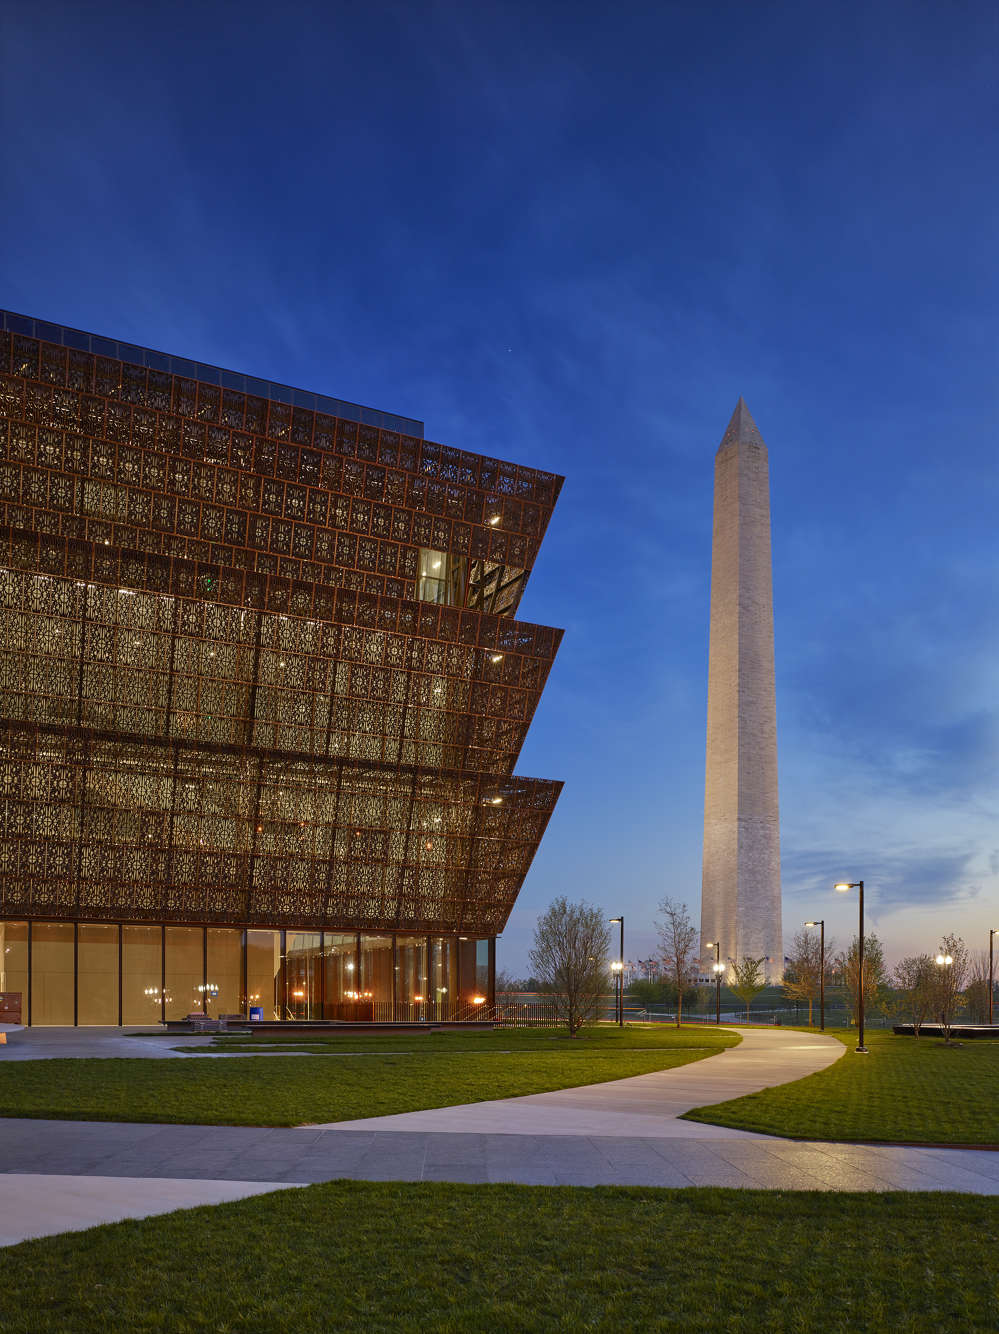 Alan Karchmer photo The Smithsonian's newest museum, the National Museum of African American History and Culture, will open to the public on Sept. 24, after a dedication ceremony with President Barack Obama.